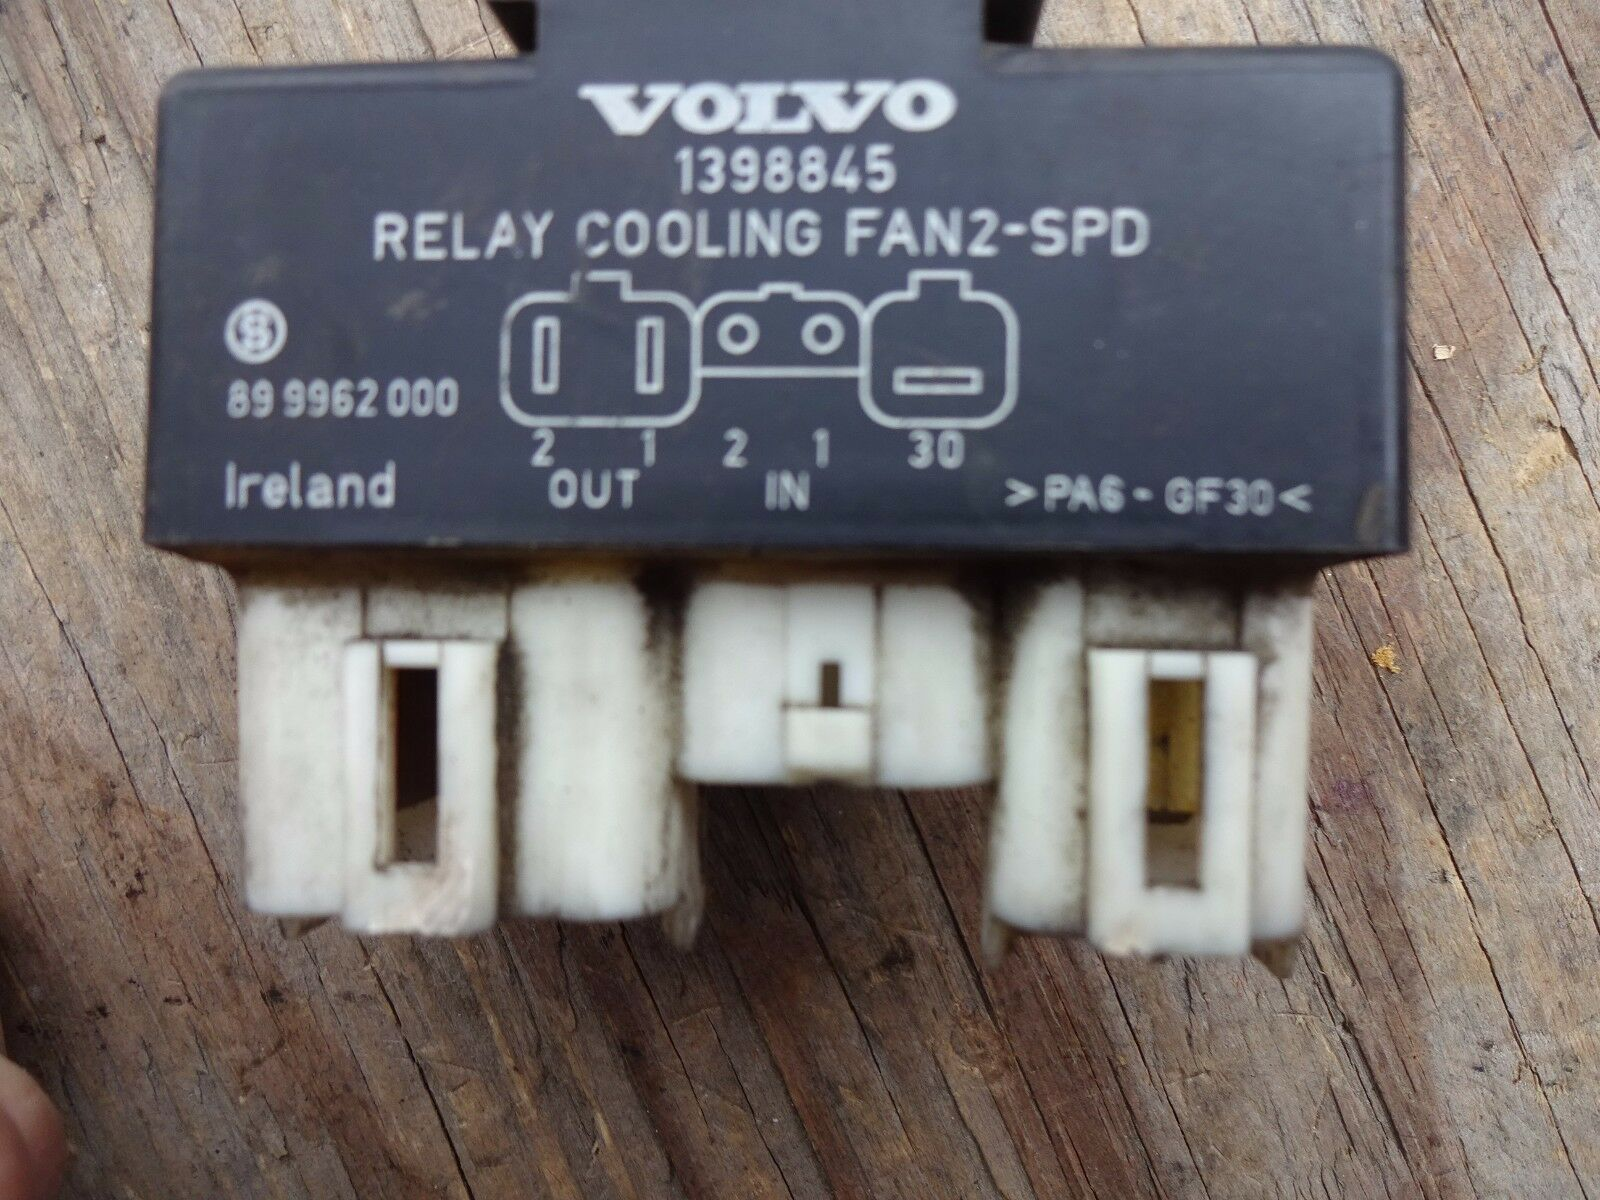 Volvo Cooling Fan Relay 1398845 3523872 94429339 Ebay 1996 850 Electric System Schematic Car Pictures